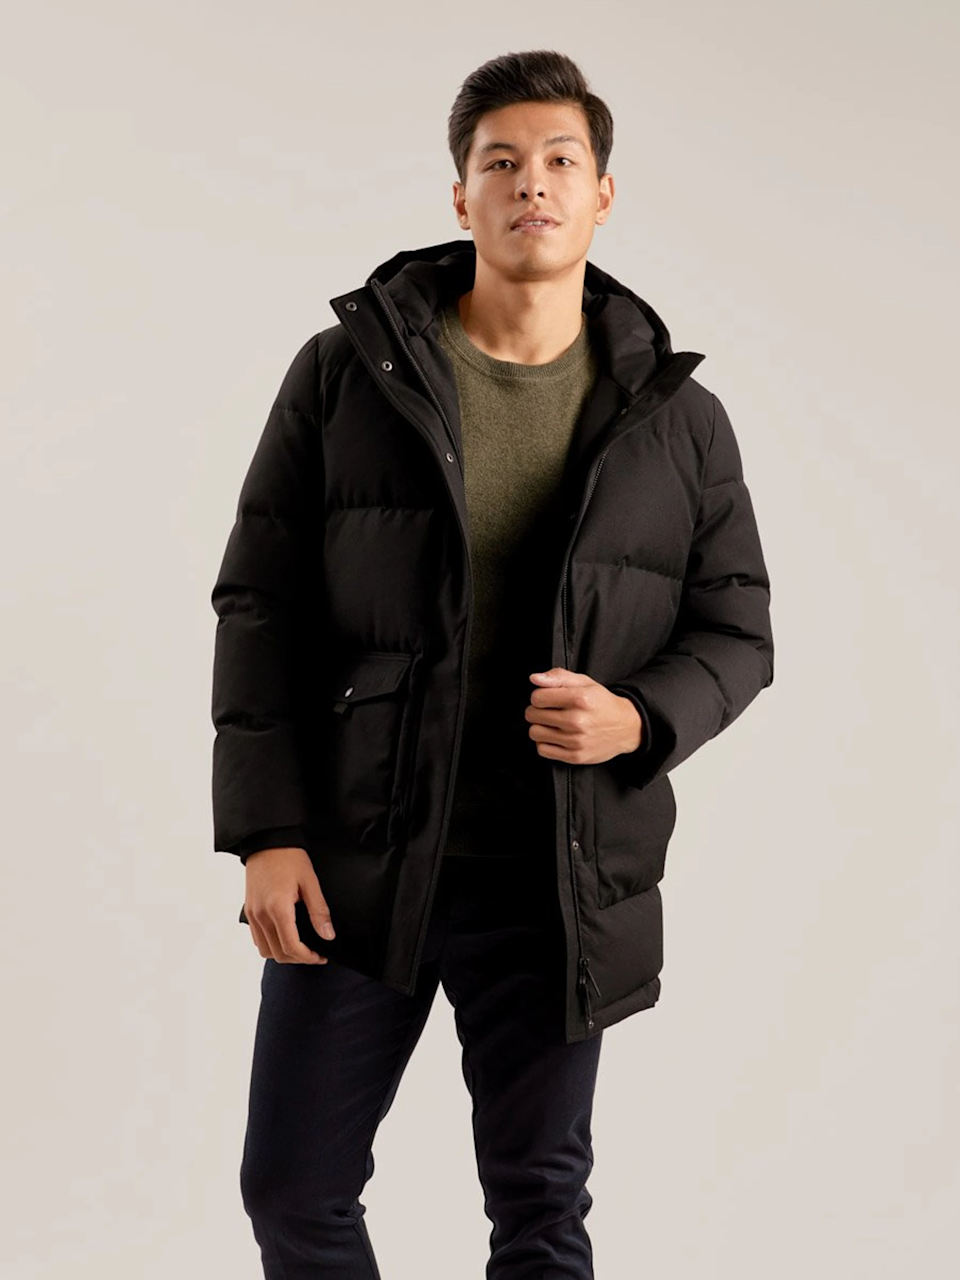 """When in doubt, go with a functional gift. Italic's parka is made in the same factory as brands like The Arrivals and Canada Goose. You're essentially getting a luxury quality product for a fraction of the price. <br><br><strong>Italic</strong> Mercer Parka, $, available at <a href=""""https://go.skimresources.com/?id=30283X879131&url=https%3A%2F%2Fitalic.com%2Fproducts%2Fmercer-parka%3FColor%3DBlack"""" rel=""""nofollow noopener"""" target=""""_blank"""" data-ylk=""""slk:Italic"""" class=""""link rapid-noclick-resp"""">Italic</a>"""